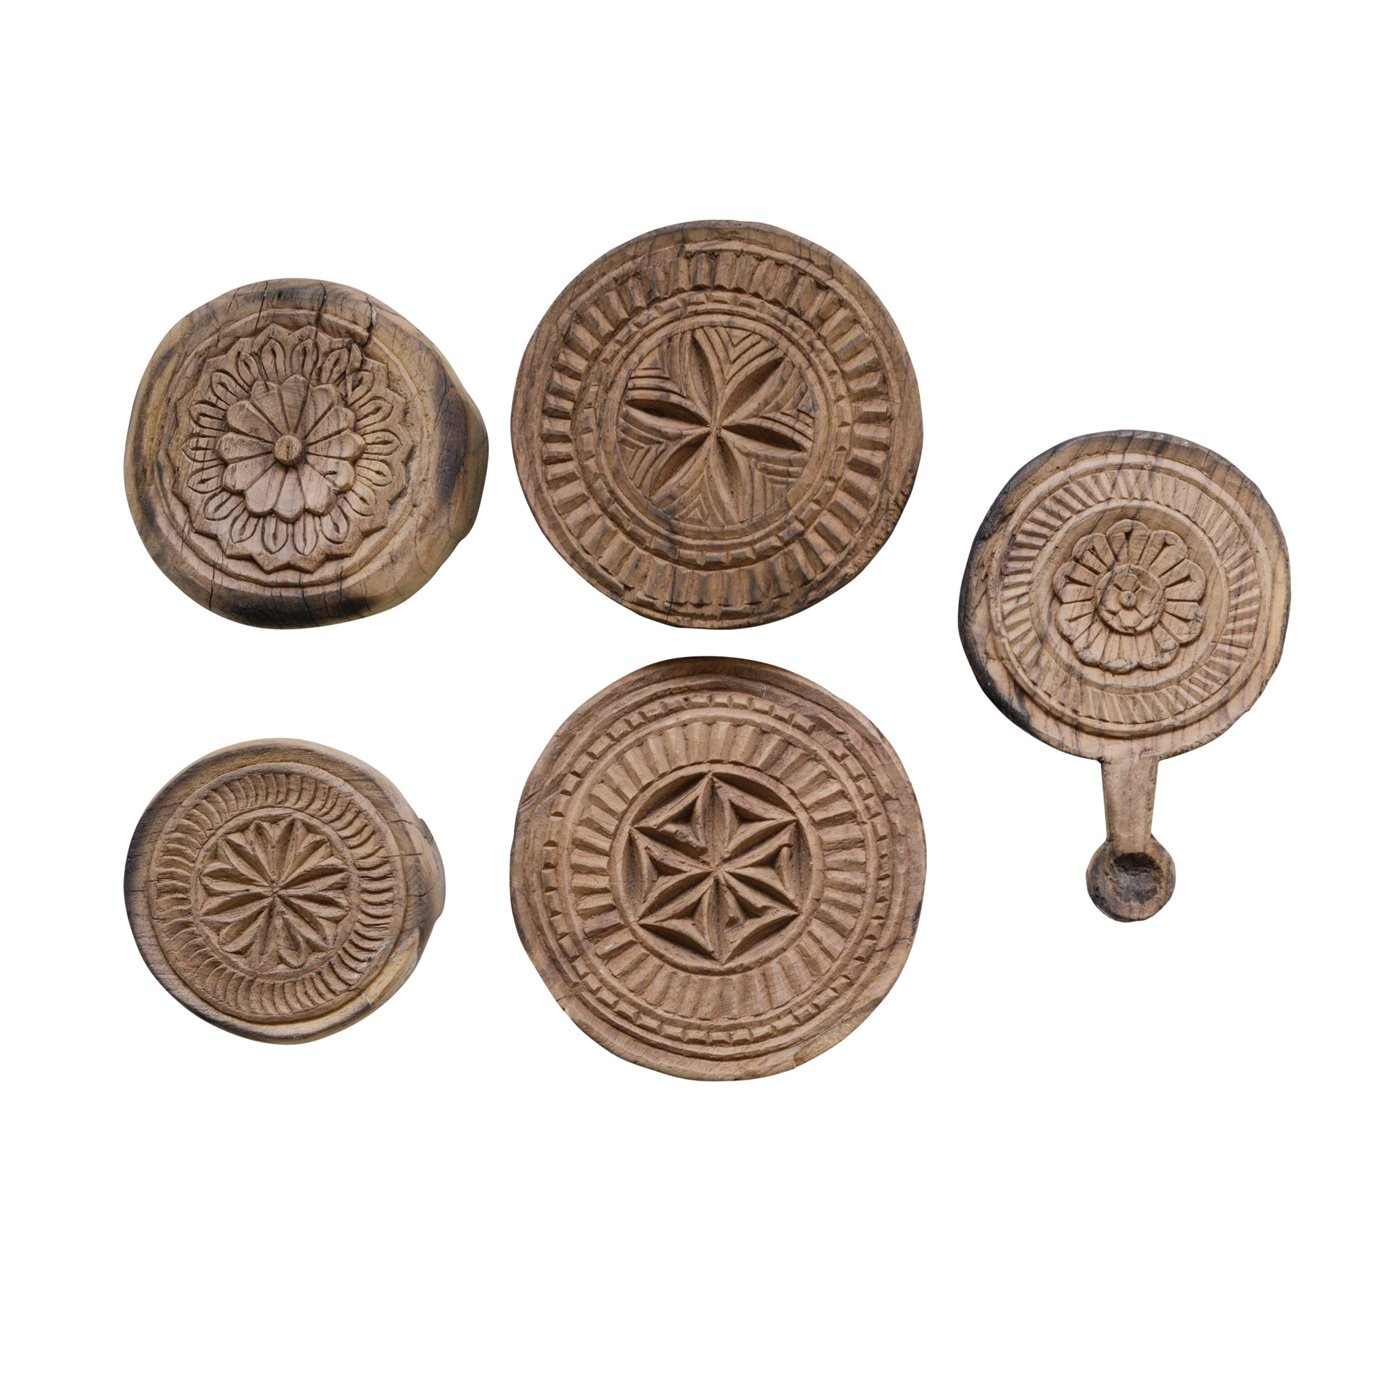 Found Hand Carved Wood Indian Bread Board (Shapes & sizes will vary)